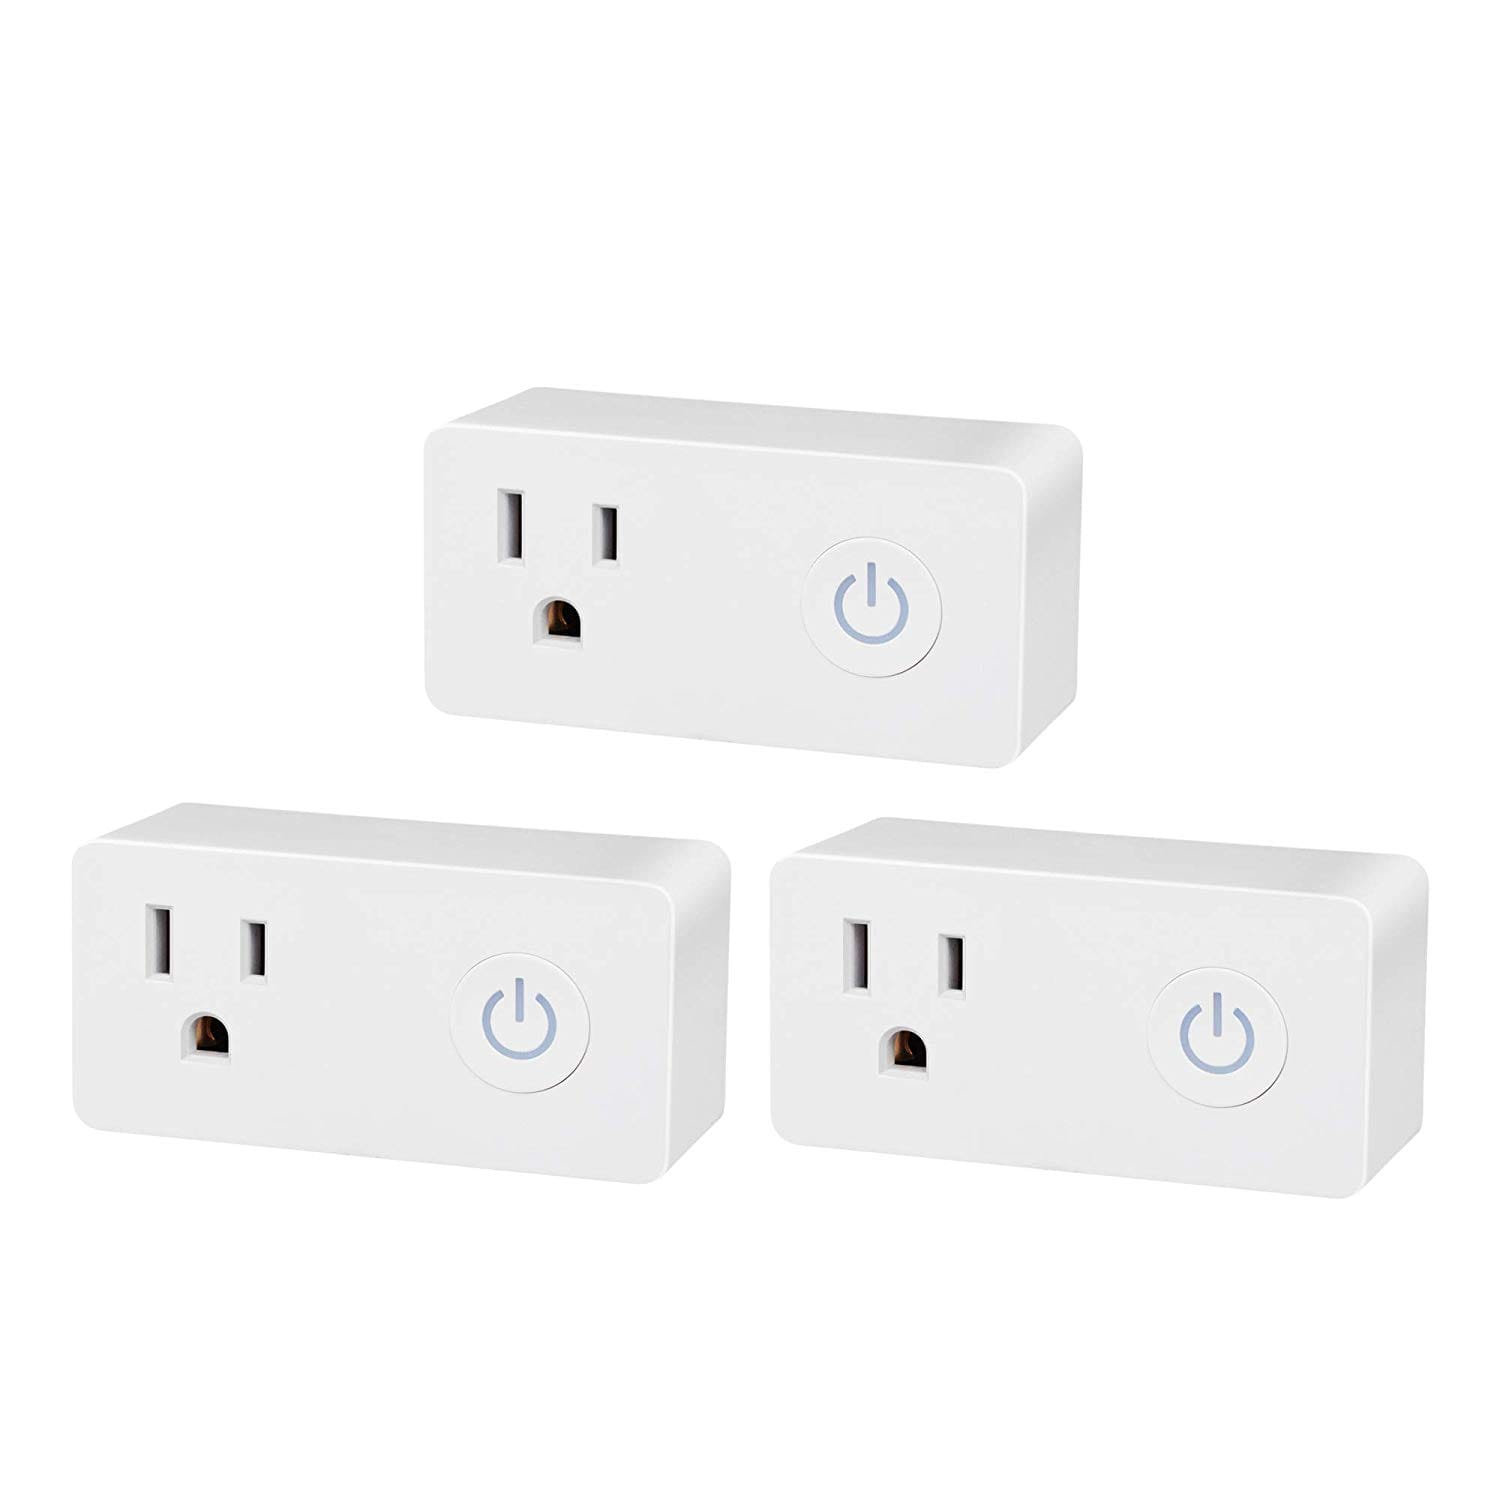 3-Pk BN-Link Smart Wi-Fi Outlet, Hubless w/ Energy Monitoring